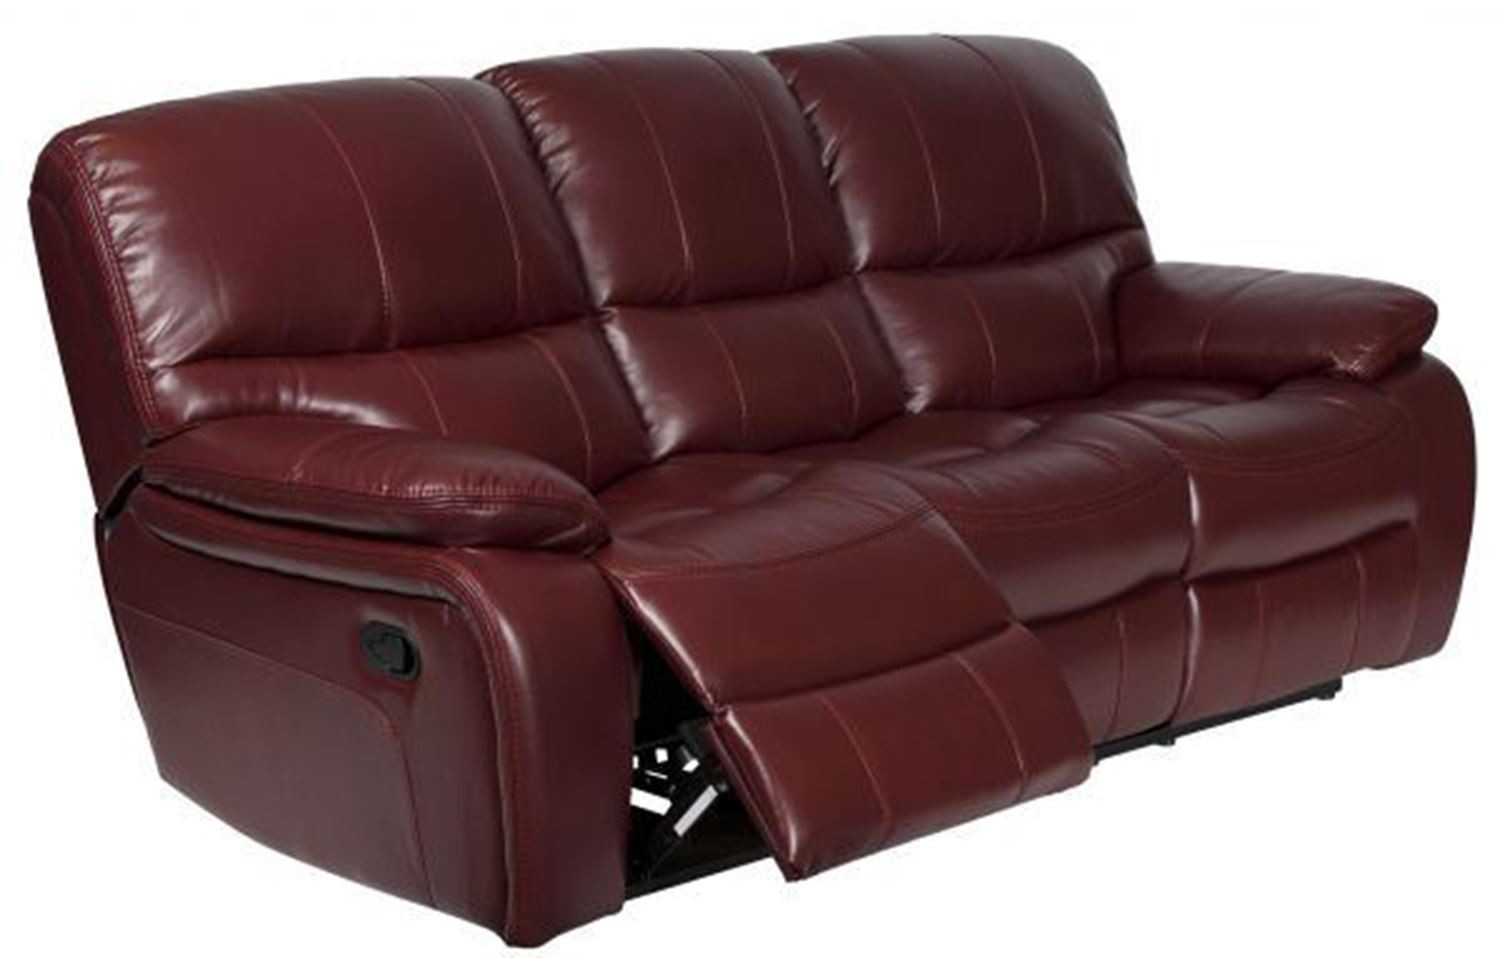 Best ideas about Triple Reclining Sofa . Save or Pin Evan Power Triple Reclining Sofa Now.